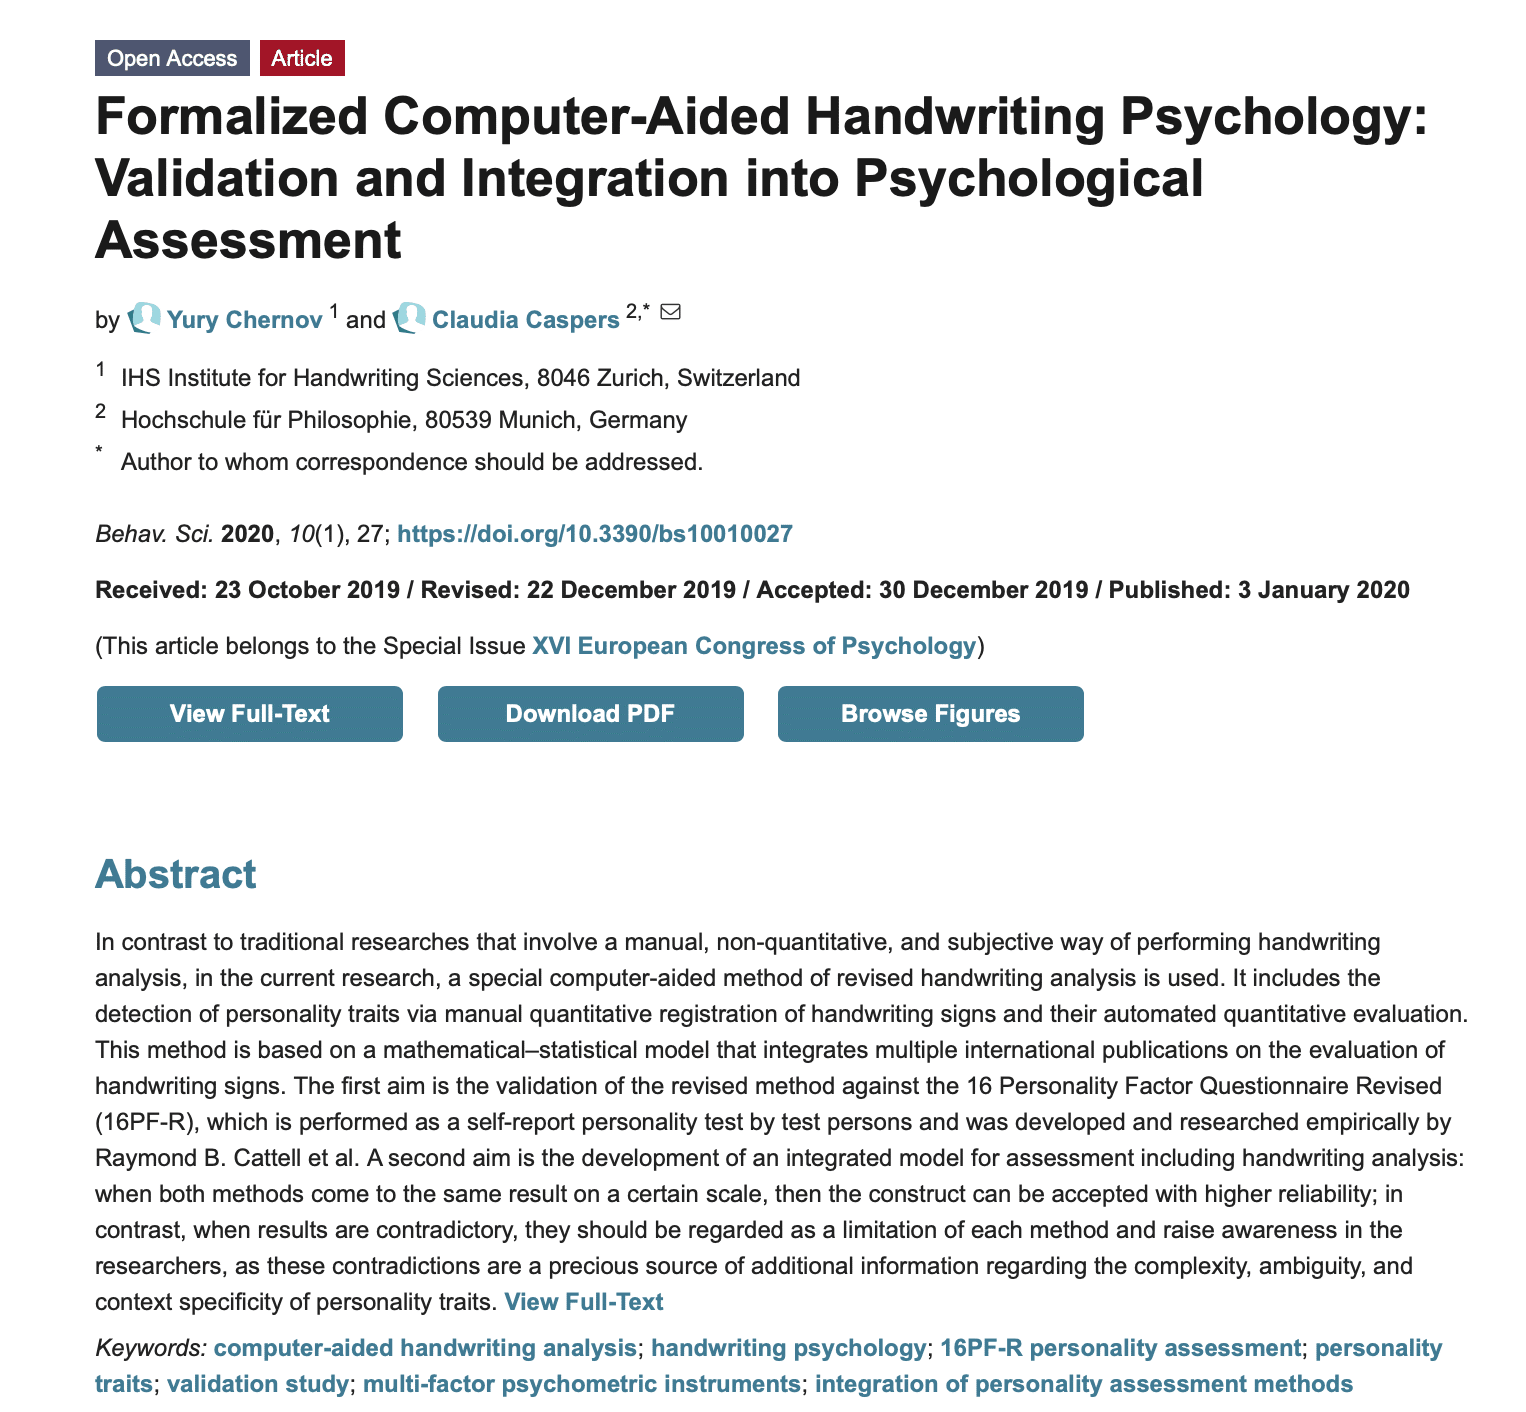 Computer and Handwriting Psychology: Integration into Psychological Assessment